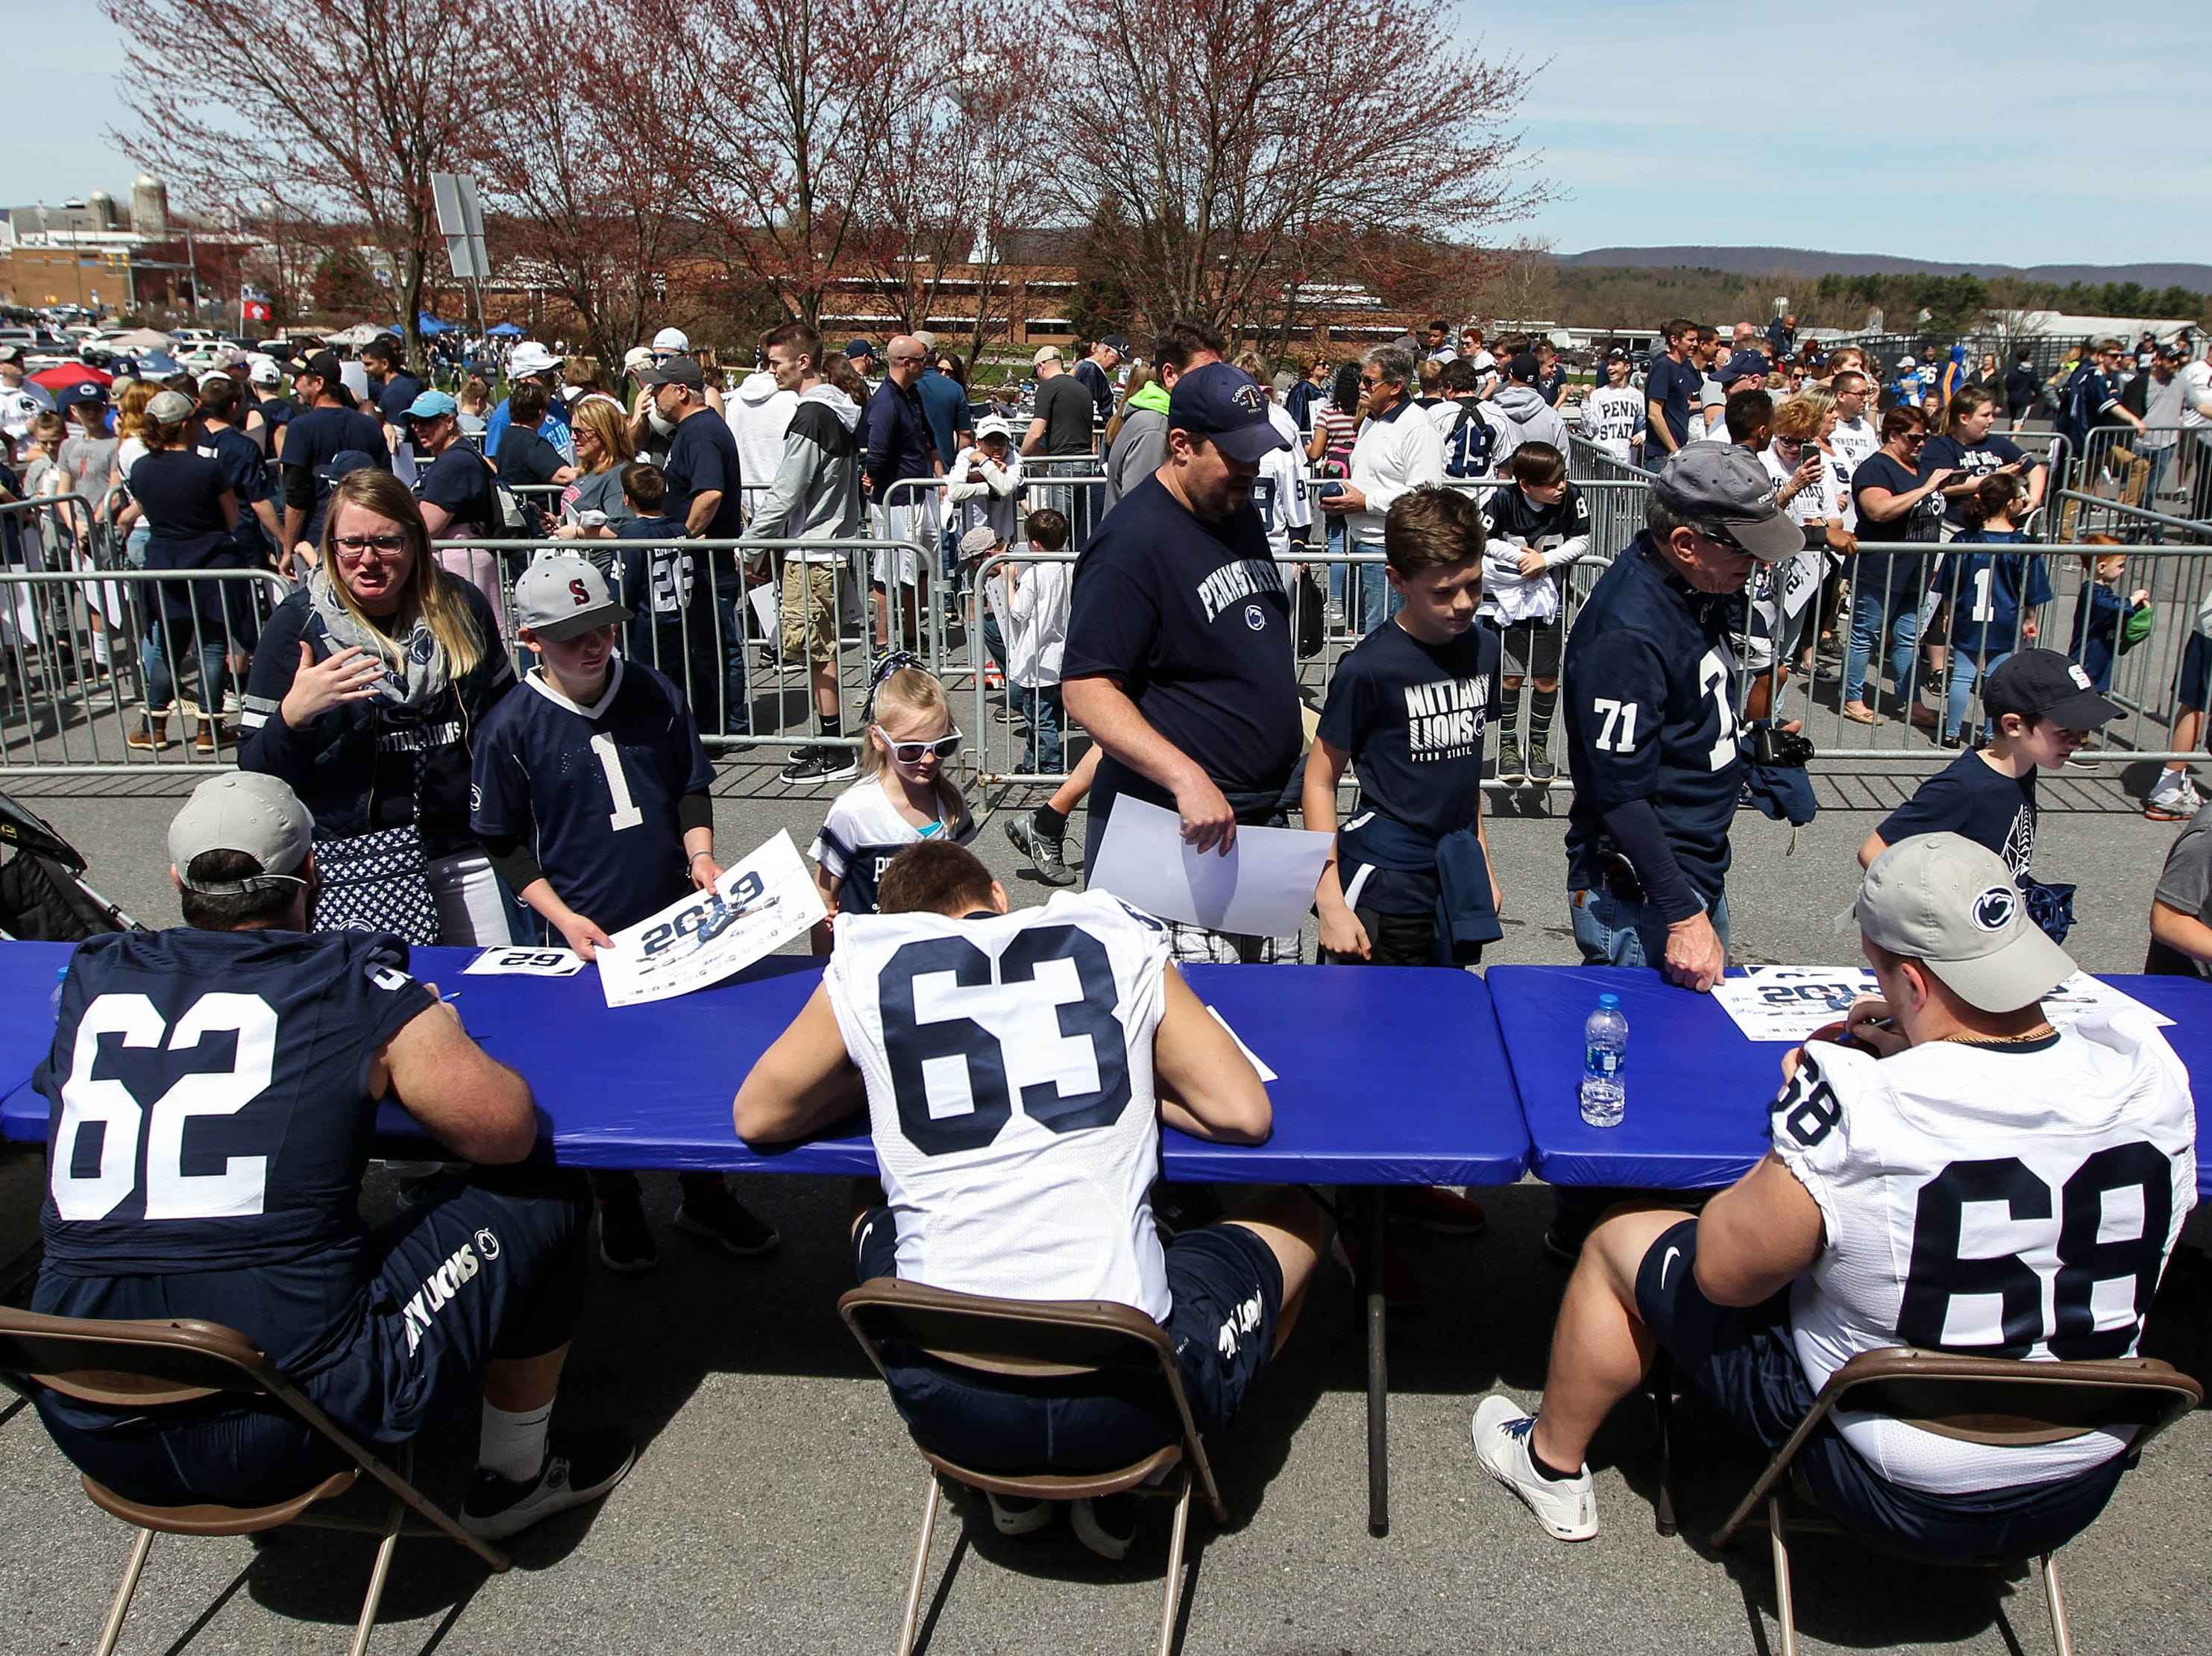 Apr 13, 2019; University Park, PA, USA; Penn State Nittany Lion players sign autographs for fans prior to the Blue White spring game at Beaver Stadium. Mandatory Credit: Matthew O'Haren-USA TODAY Sports